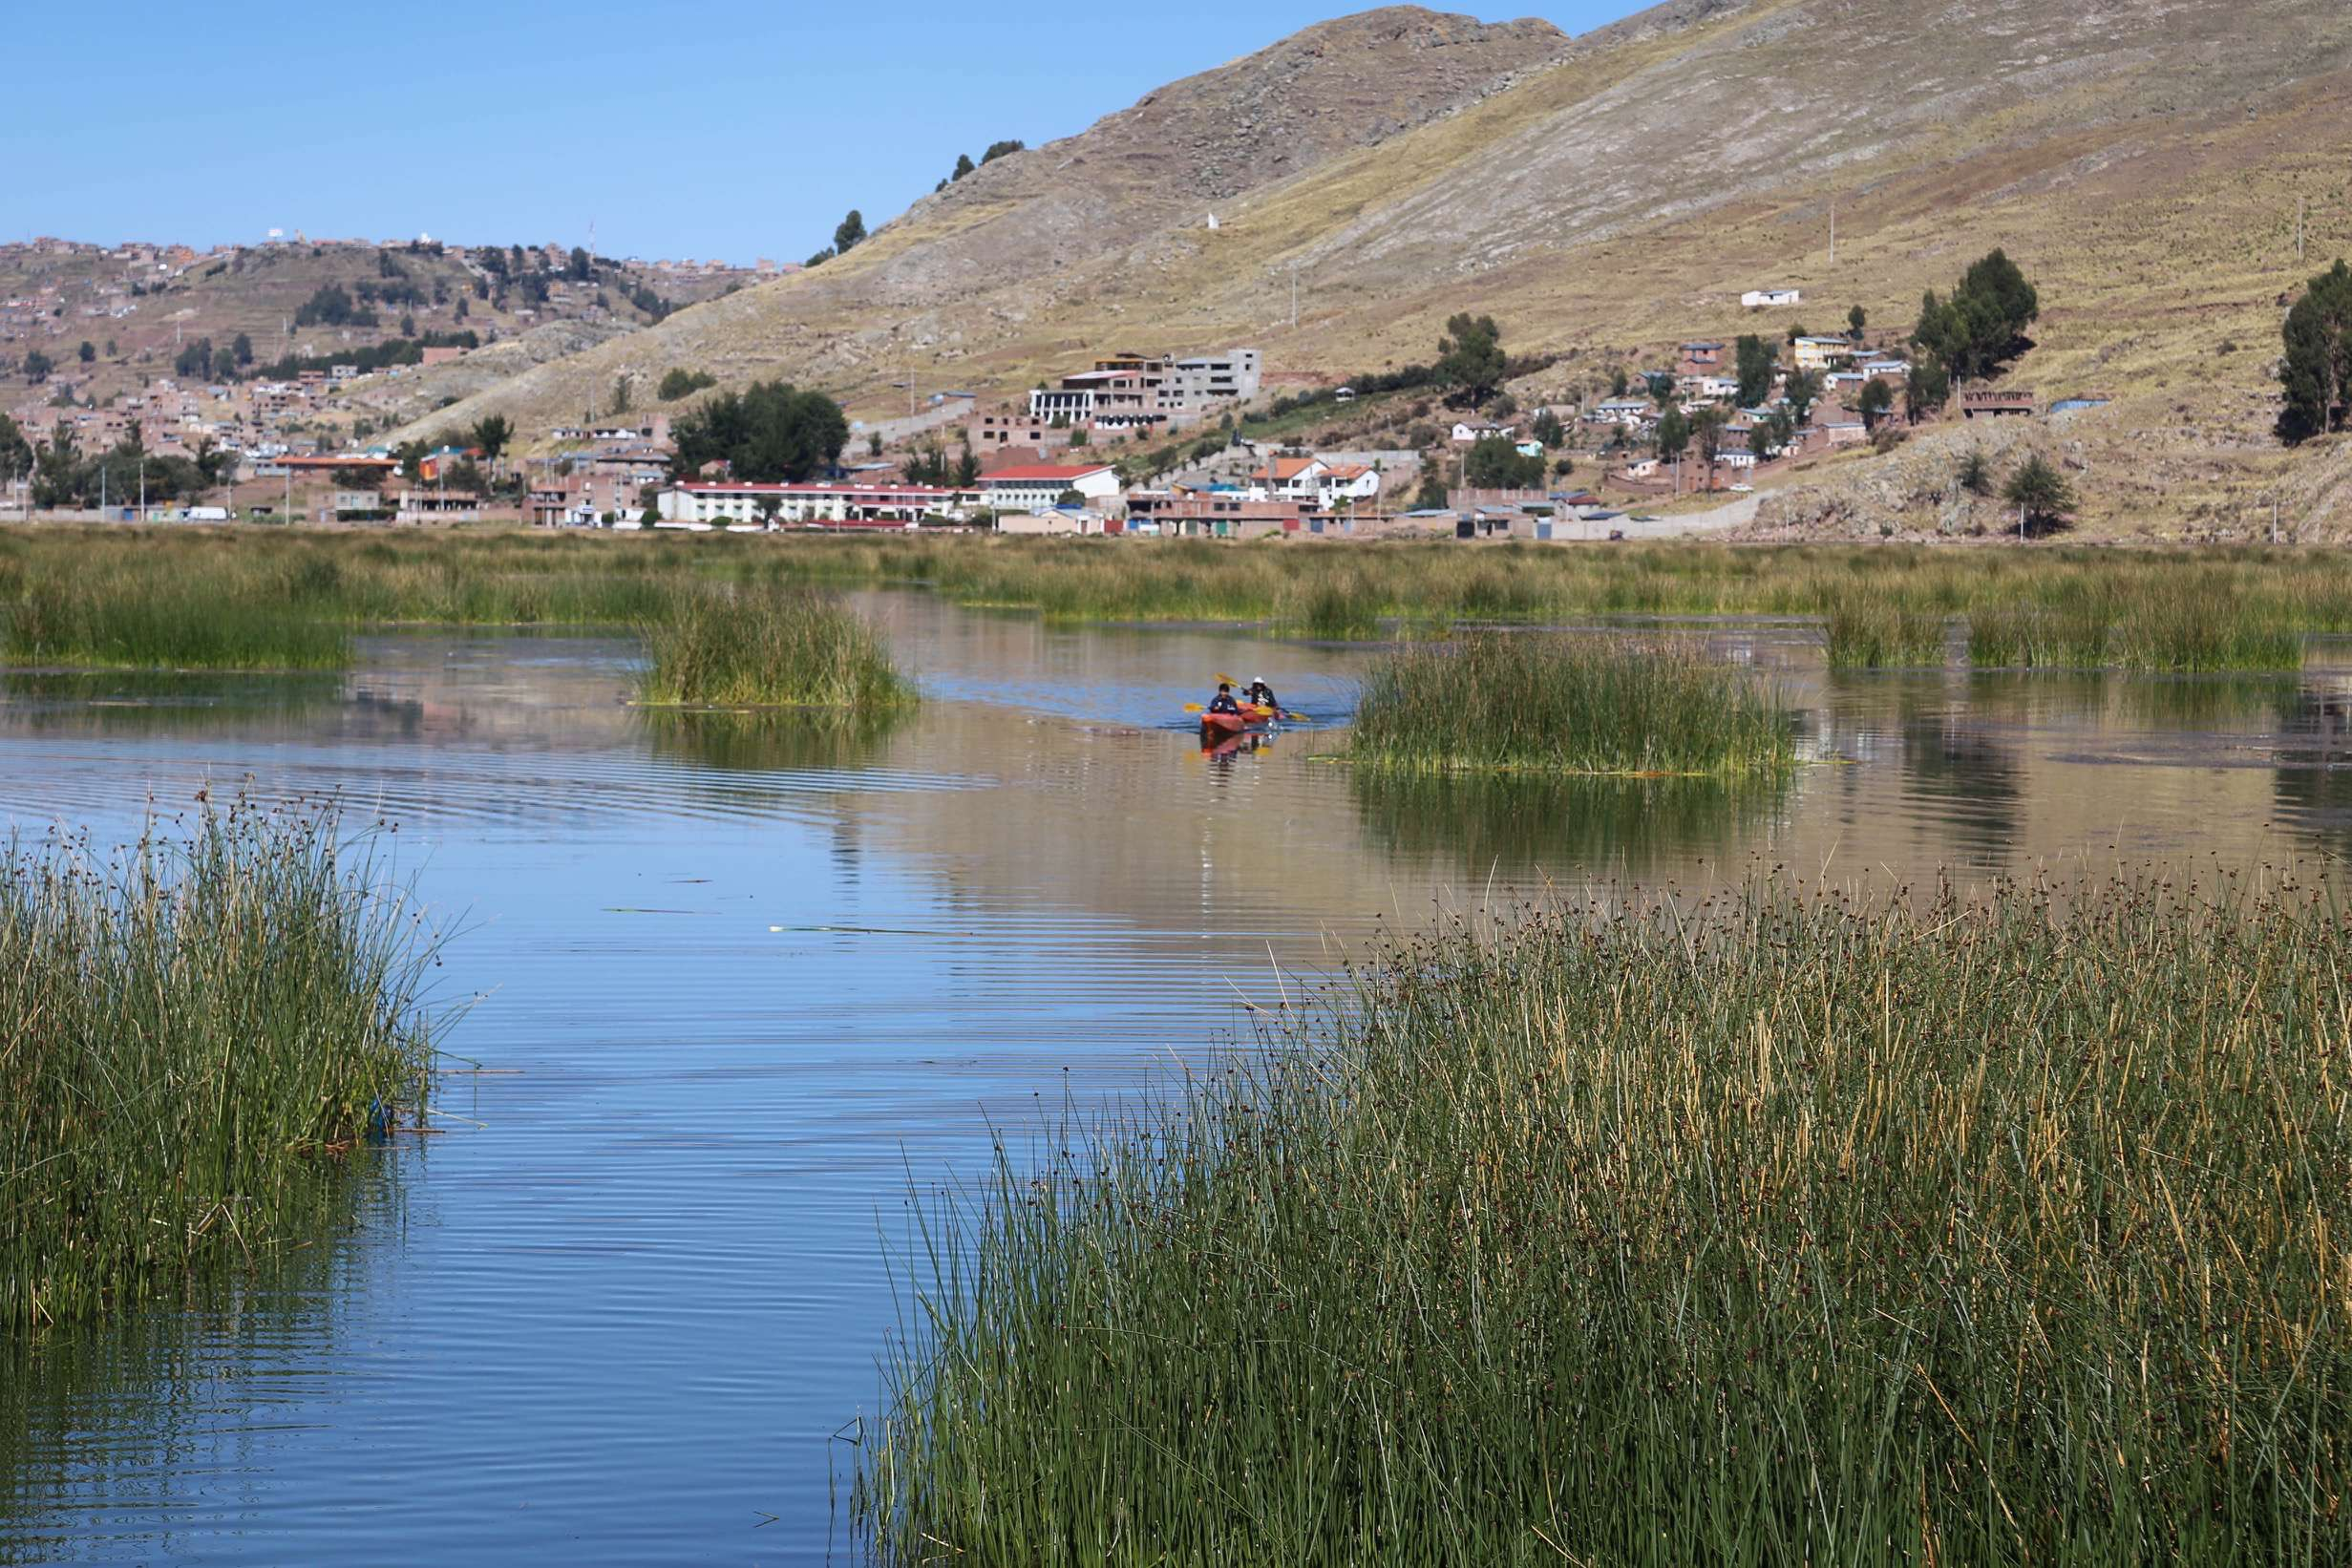 Towns and villages are dotted all along Lake Titicaca. Puno, Peru has a population of over 140,000.